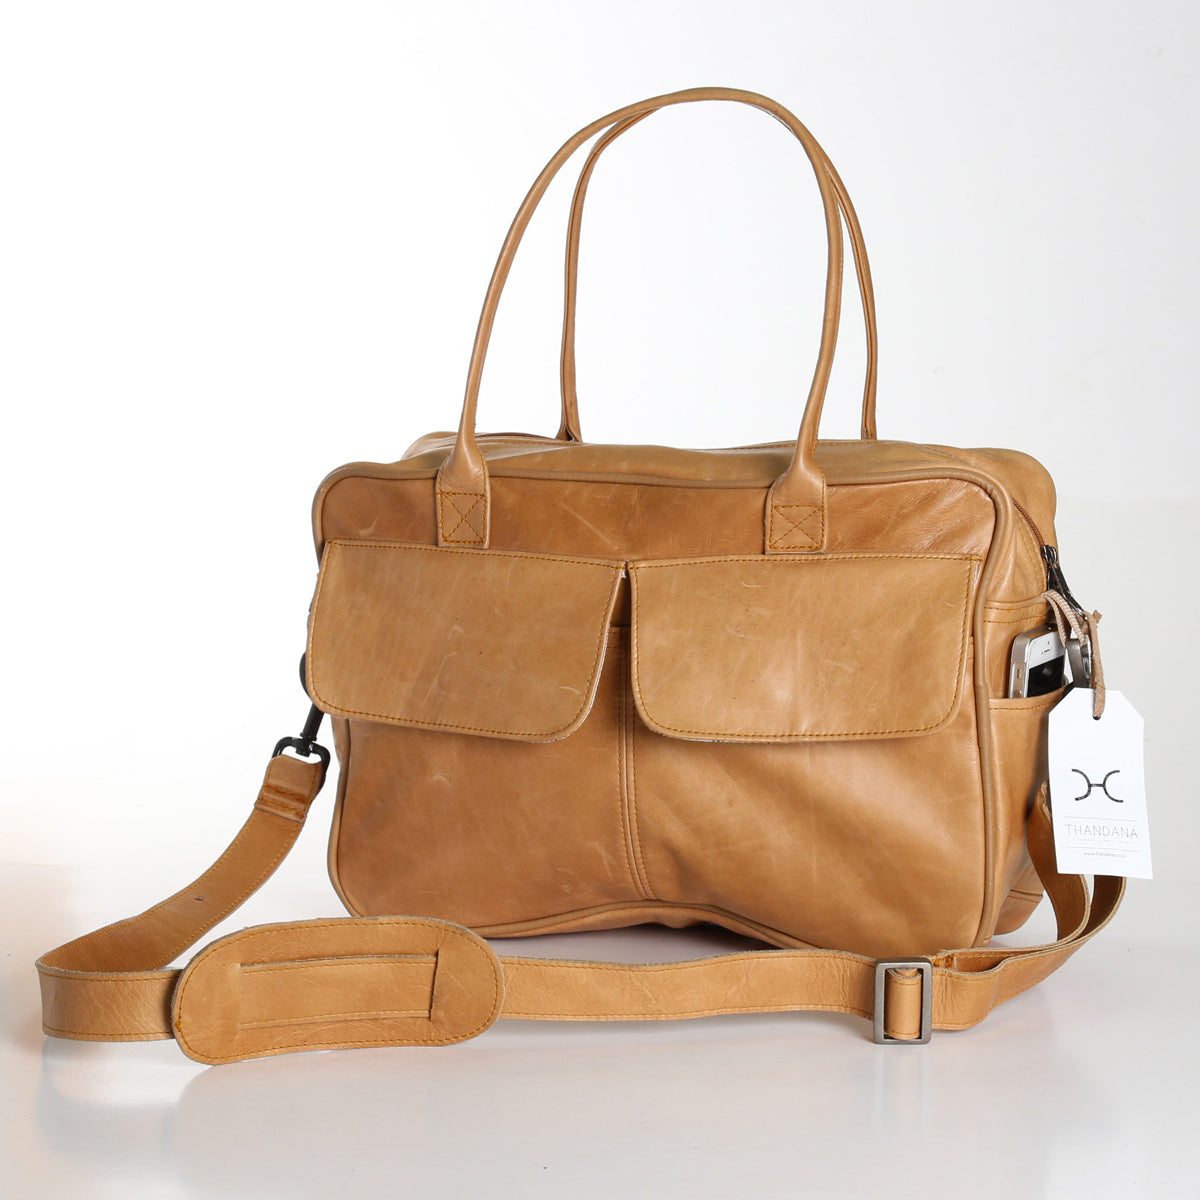 Thandana Briefcase - Hazelnut - Zufrique Boutique